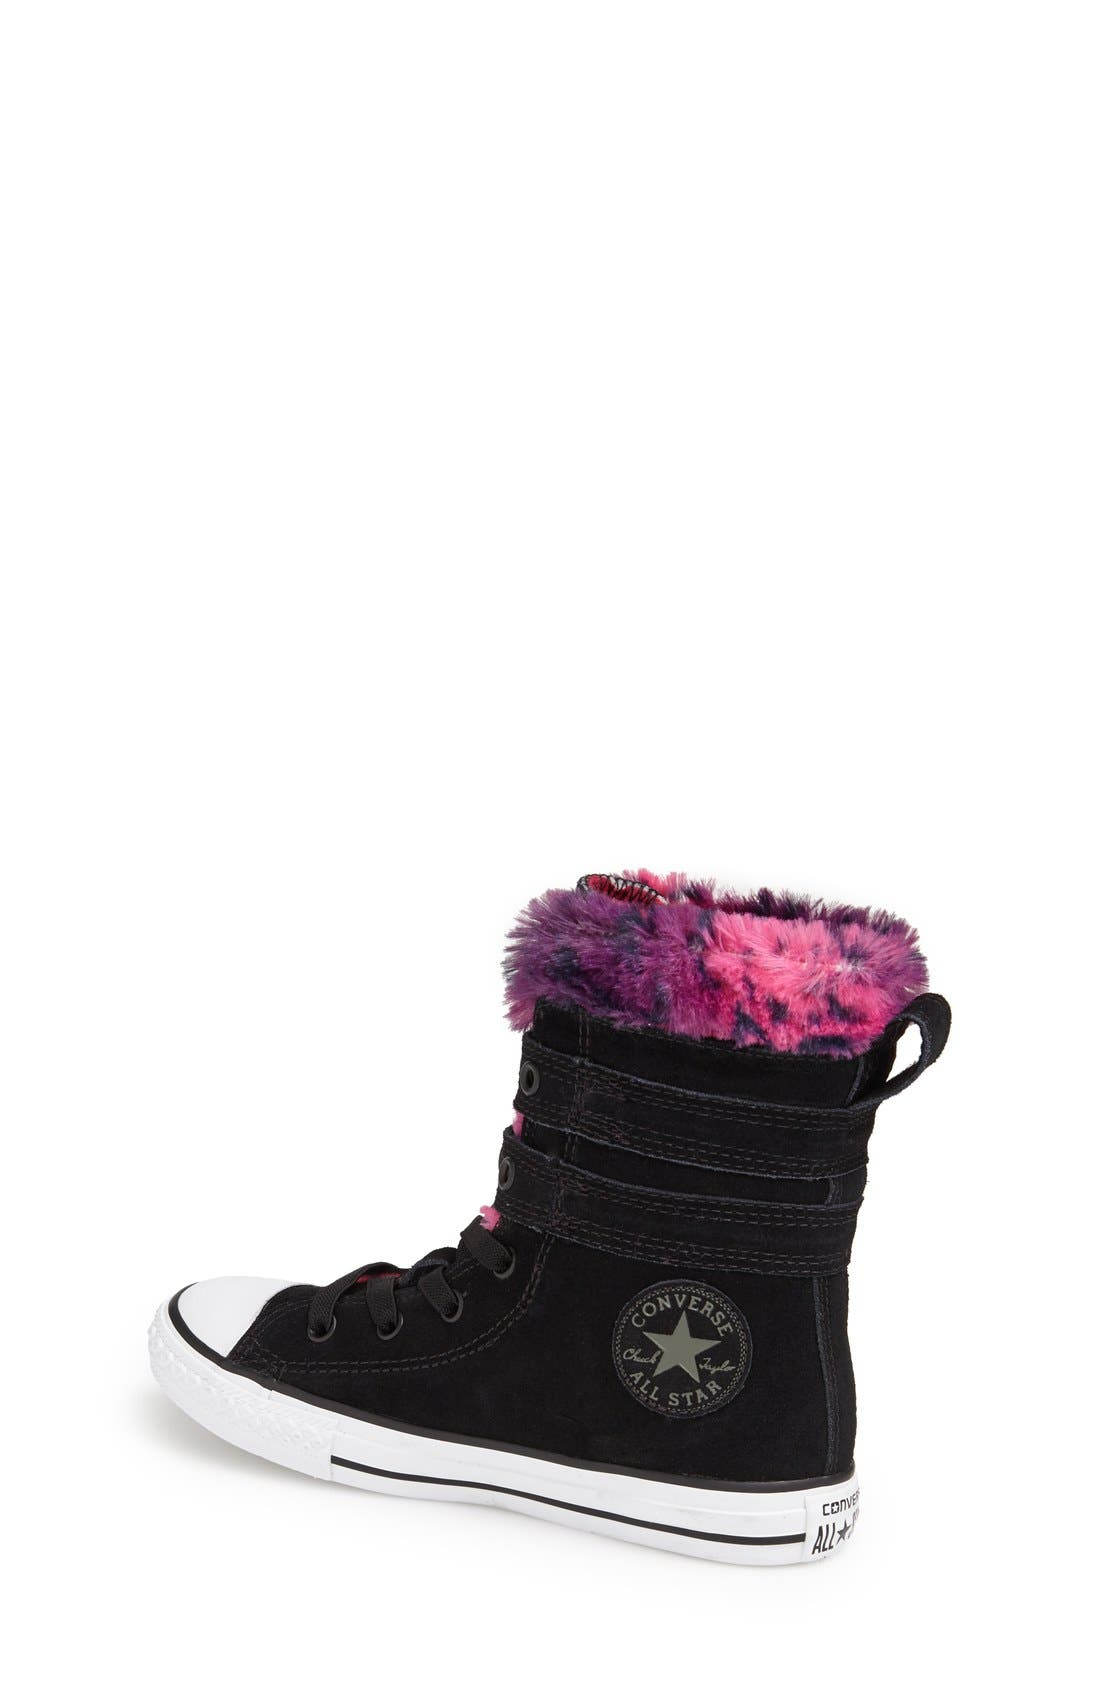 CONVERSE,                             Chuck Taylor<sup>®</sup> All Star<sup>®</sup> 'Glendale' High Top Sneaker,                             Alternate thumbnail 4, color,                             001